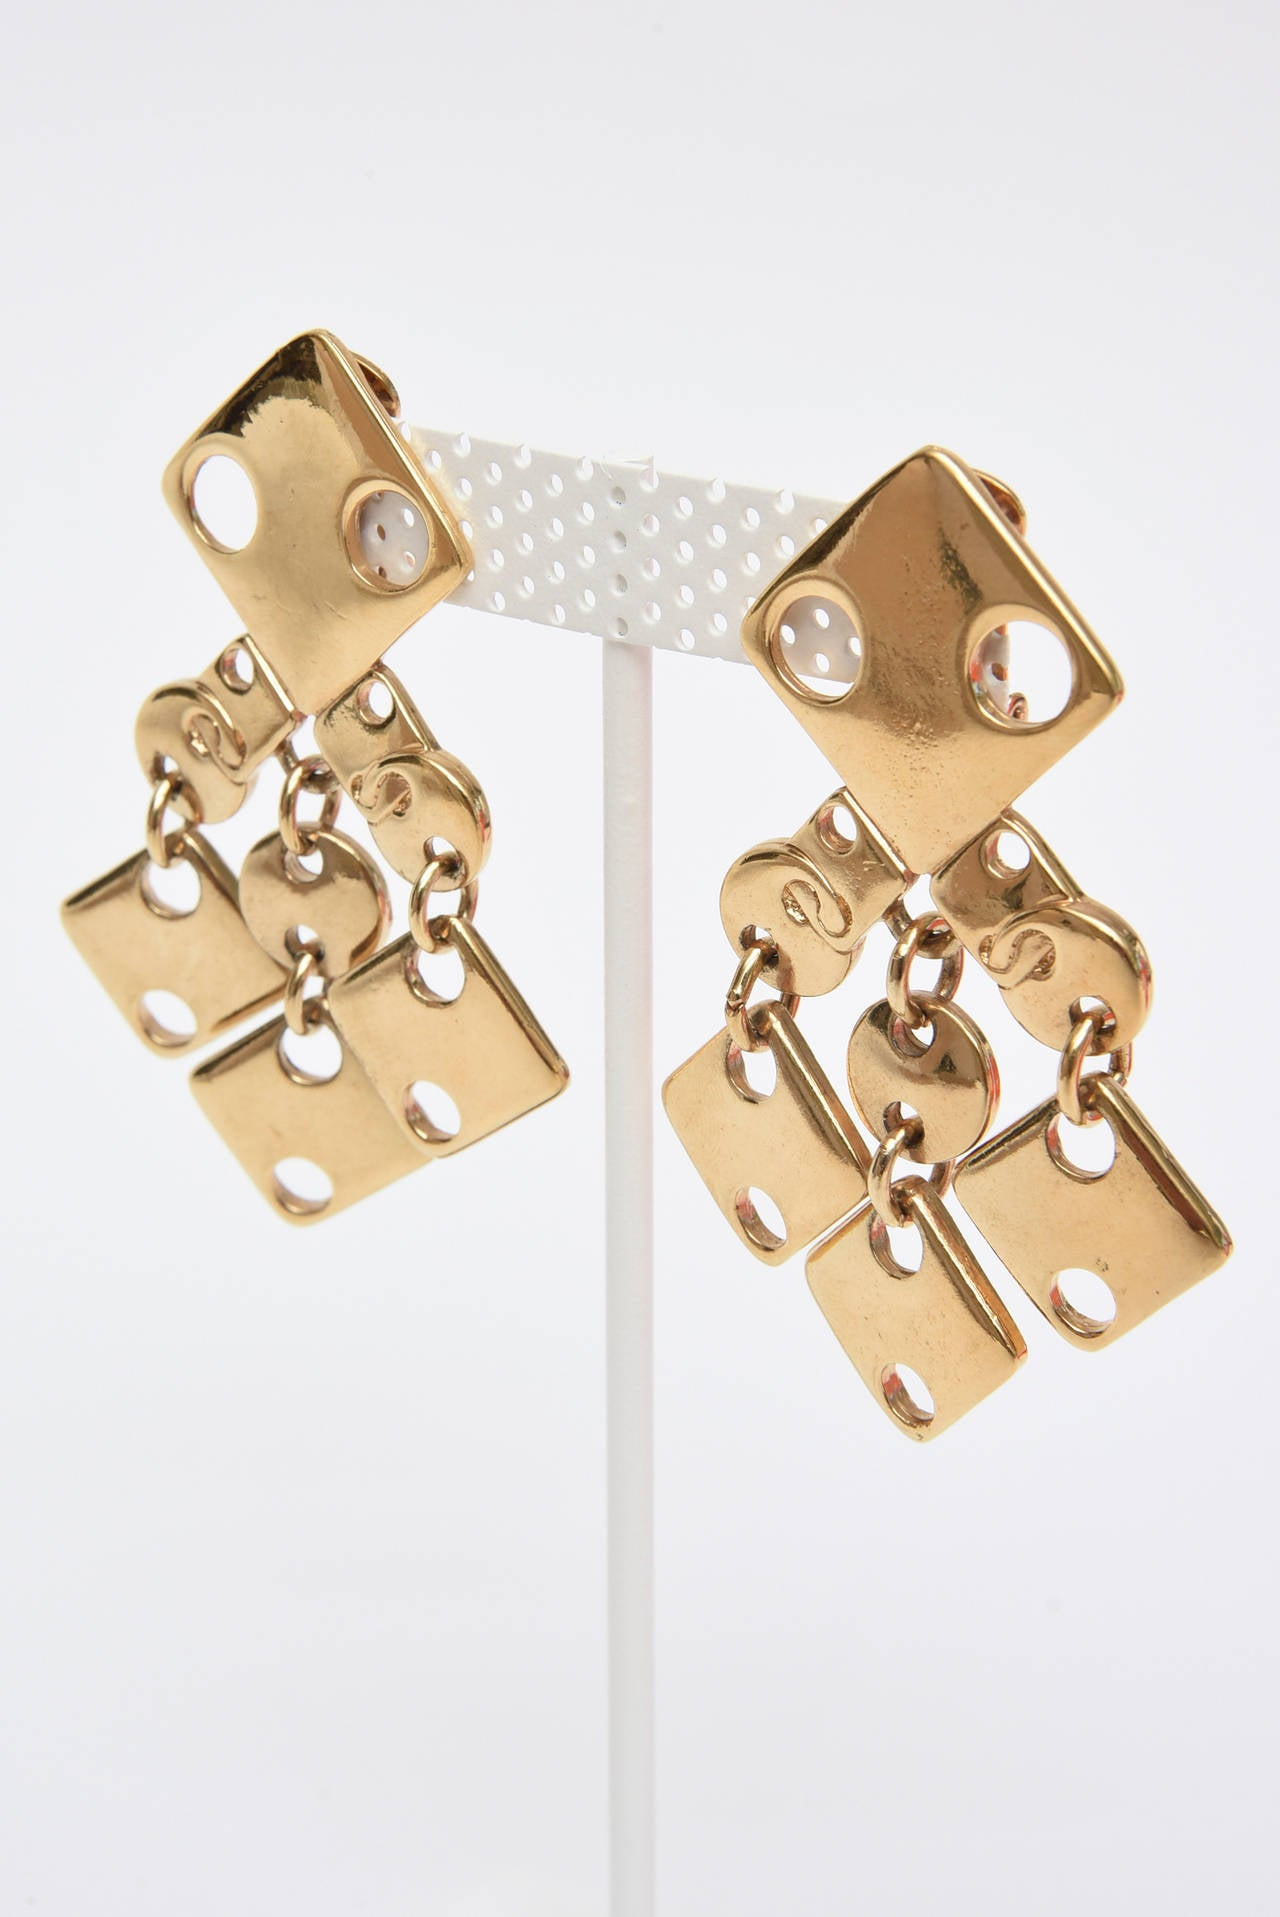 Paco Rabanne Geometric Gold Plated Modernist Brass Earrings 60's Signed In Good Condition For Sale In North Miami, FL